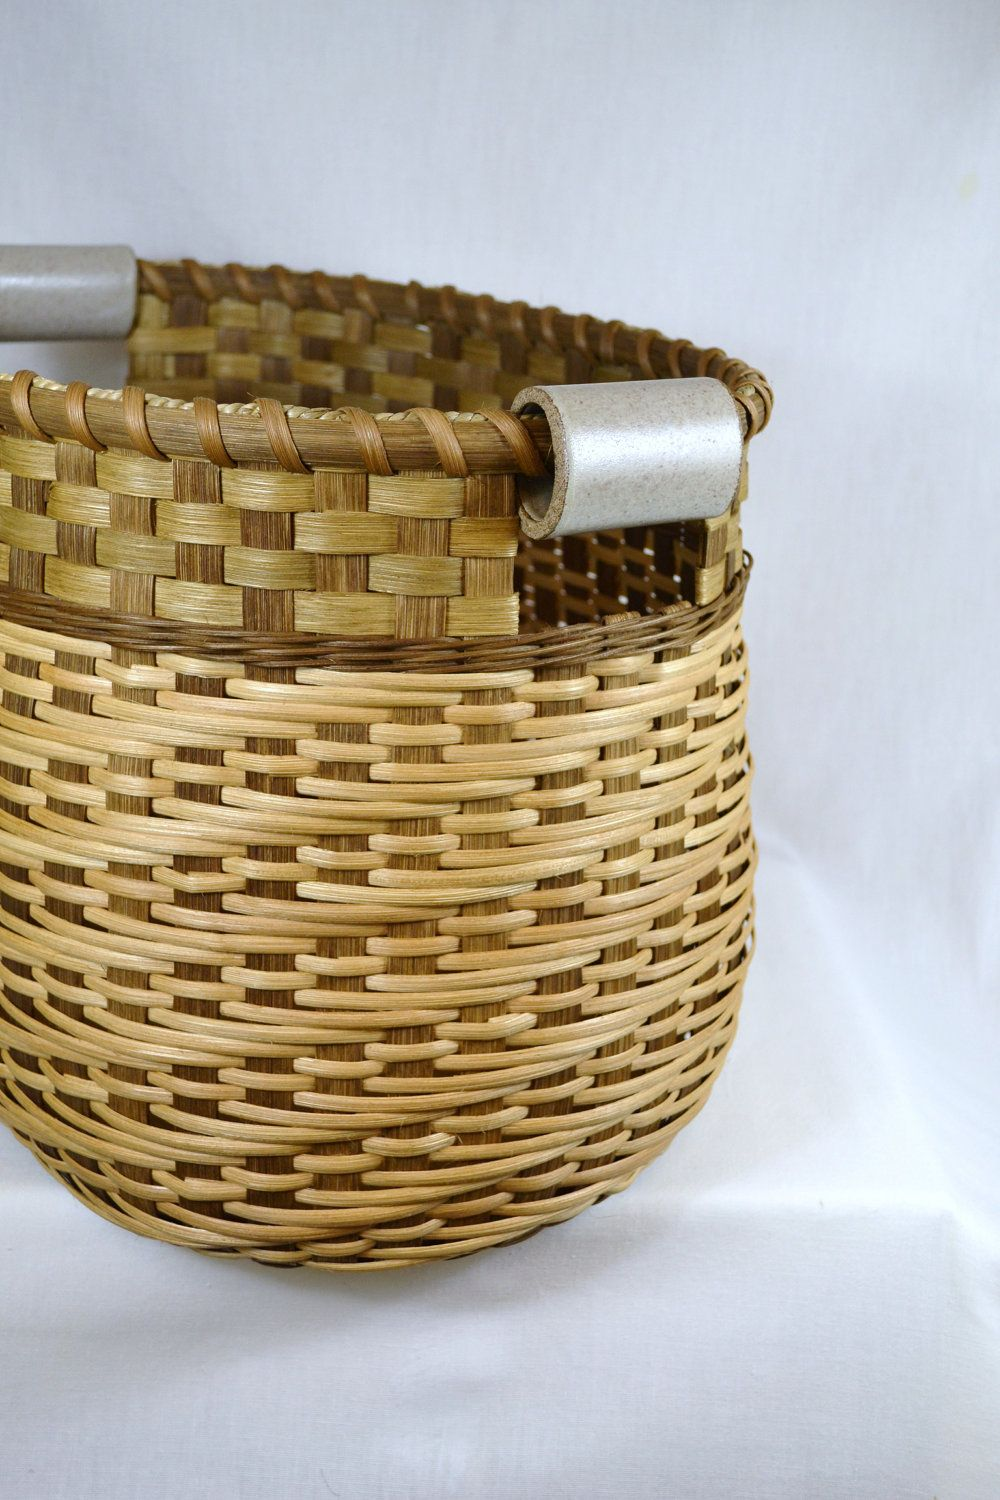 Large Reed Or Wicker Storage Basket With Twill Weave And Pottery Handles For Laundry Toys Yarn Basket Weaving Wicker Baskets Storage Bamboo Basket